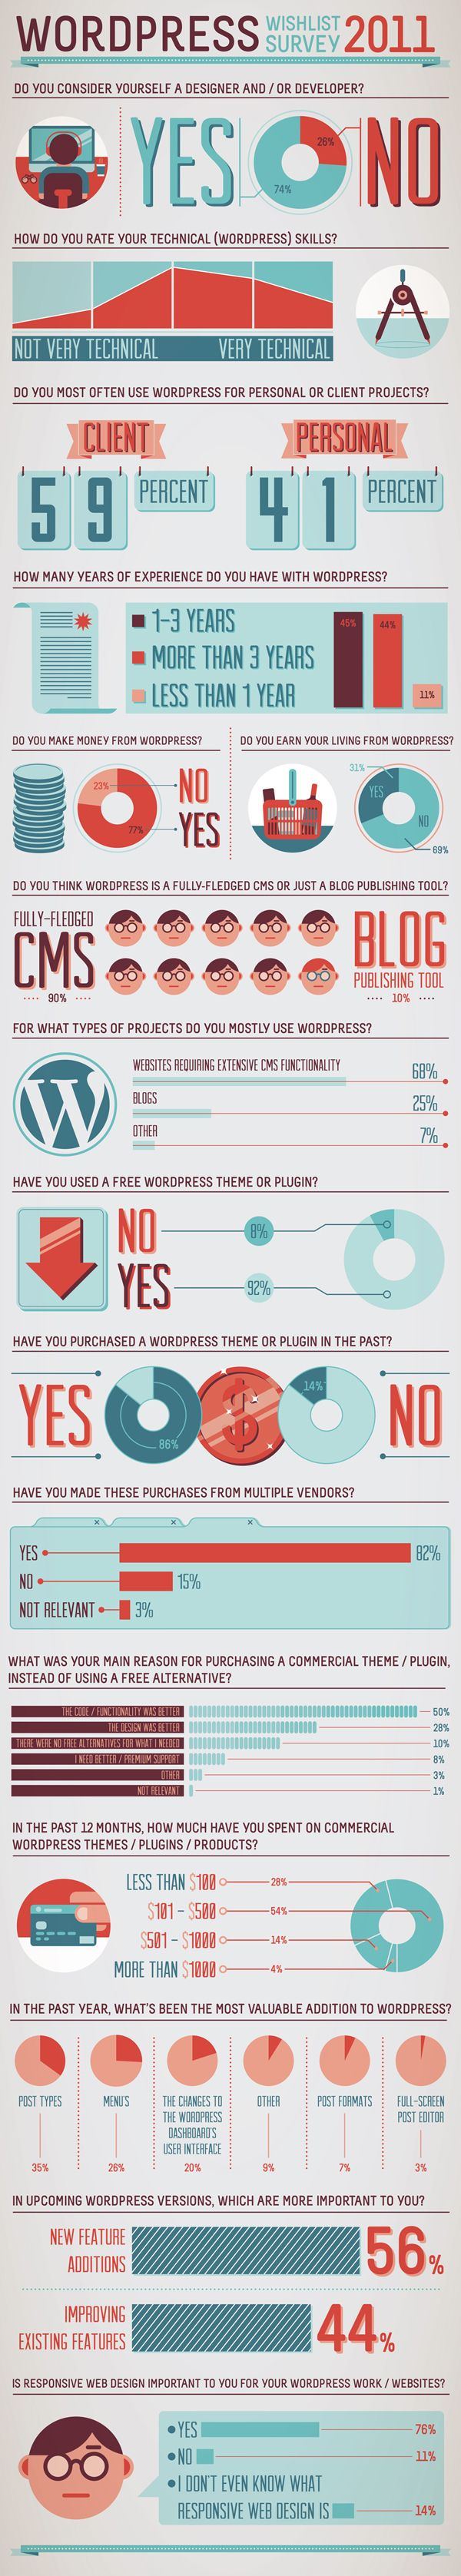 "Inside daily routine looking i am acquiring a infographic design for wordpress. I read it & like it, soon after Reading i""ll choose to share this infographic shape for my Visitors. Hopefully anyone all the love to Read."